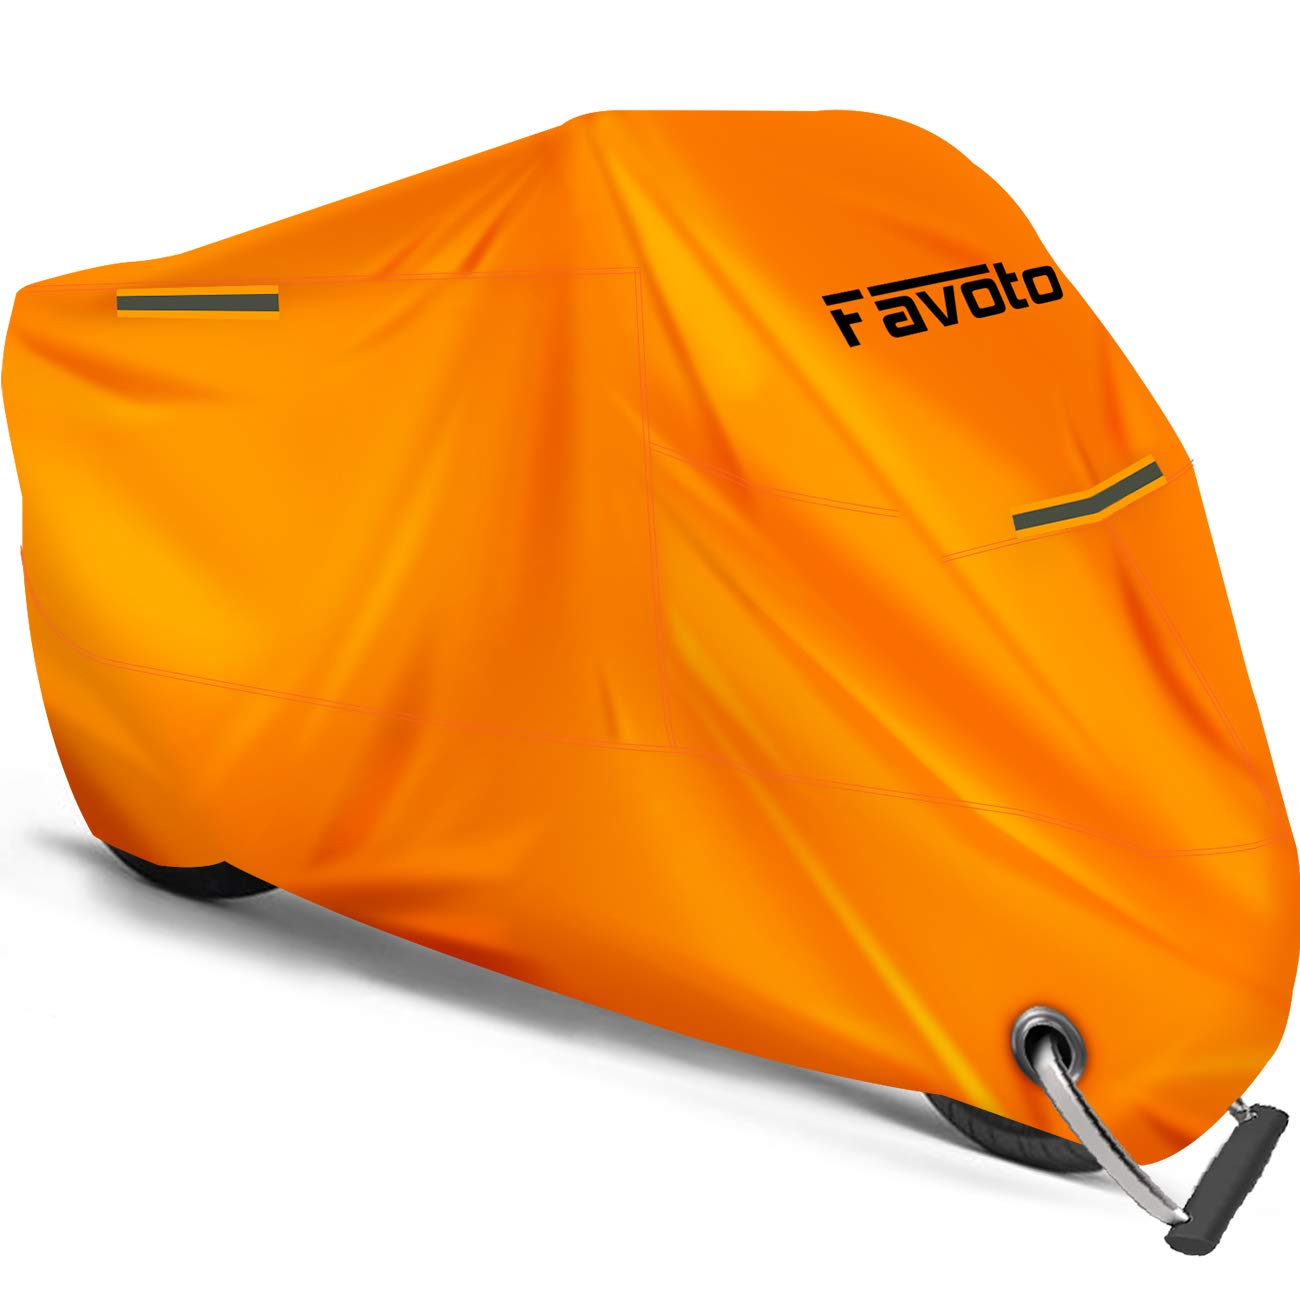 Favoto Motorcycle Cover [Upgraded Version] Waterproof Outdoor, Safe Orange Color, Thicker Material Universal, Sun Protection, 3 Night Reflective, Lock-hole, Storage Bag, Fit up to 104 inch Vehicle by Favoto